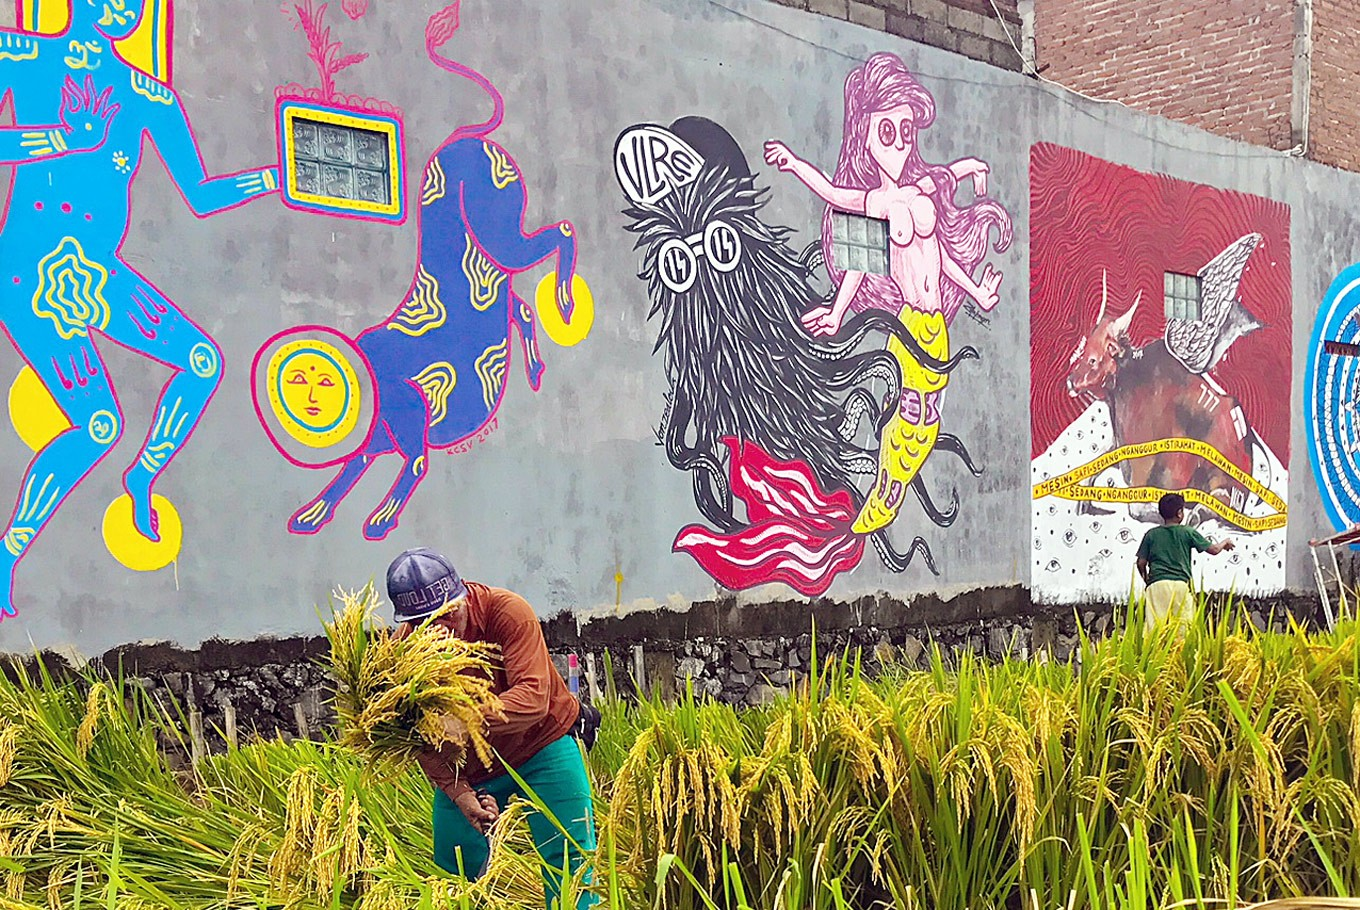 Bali's unstoppable rise of street art